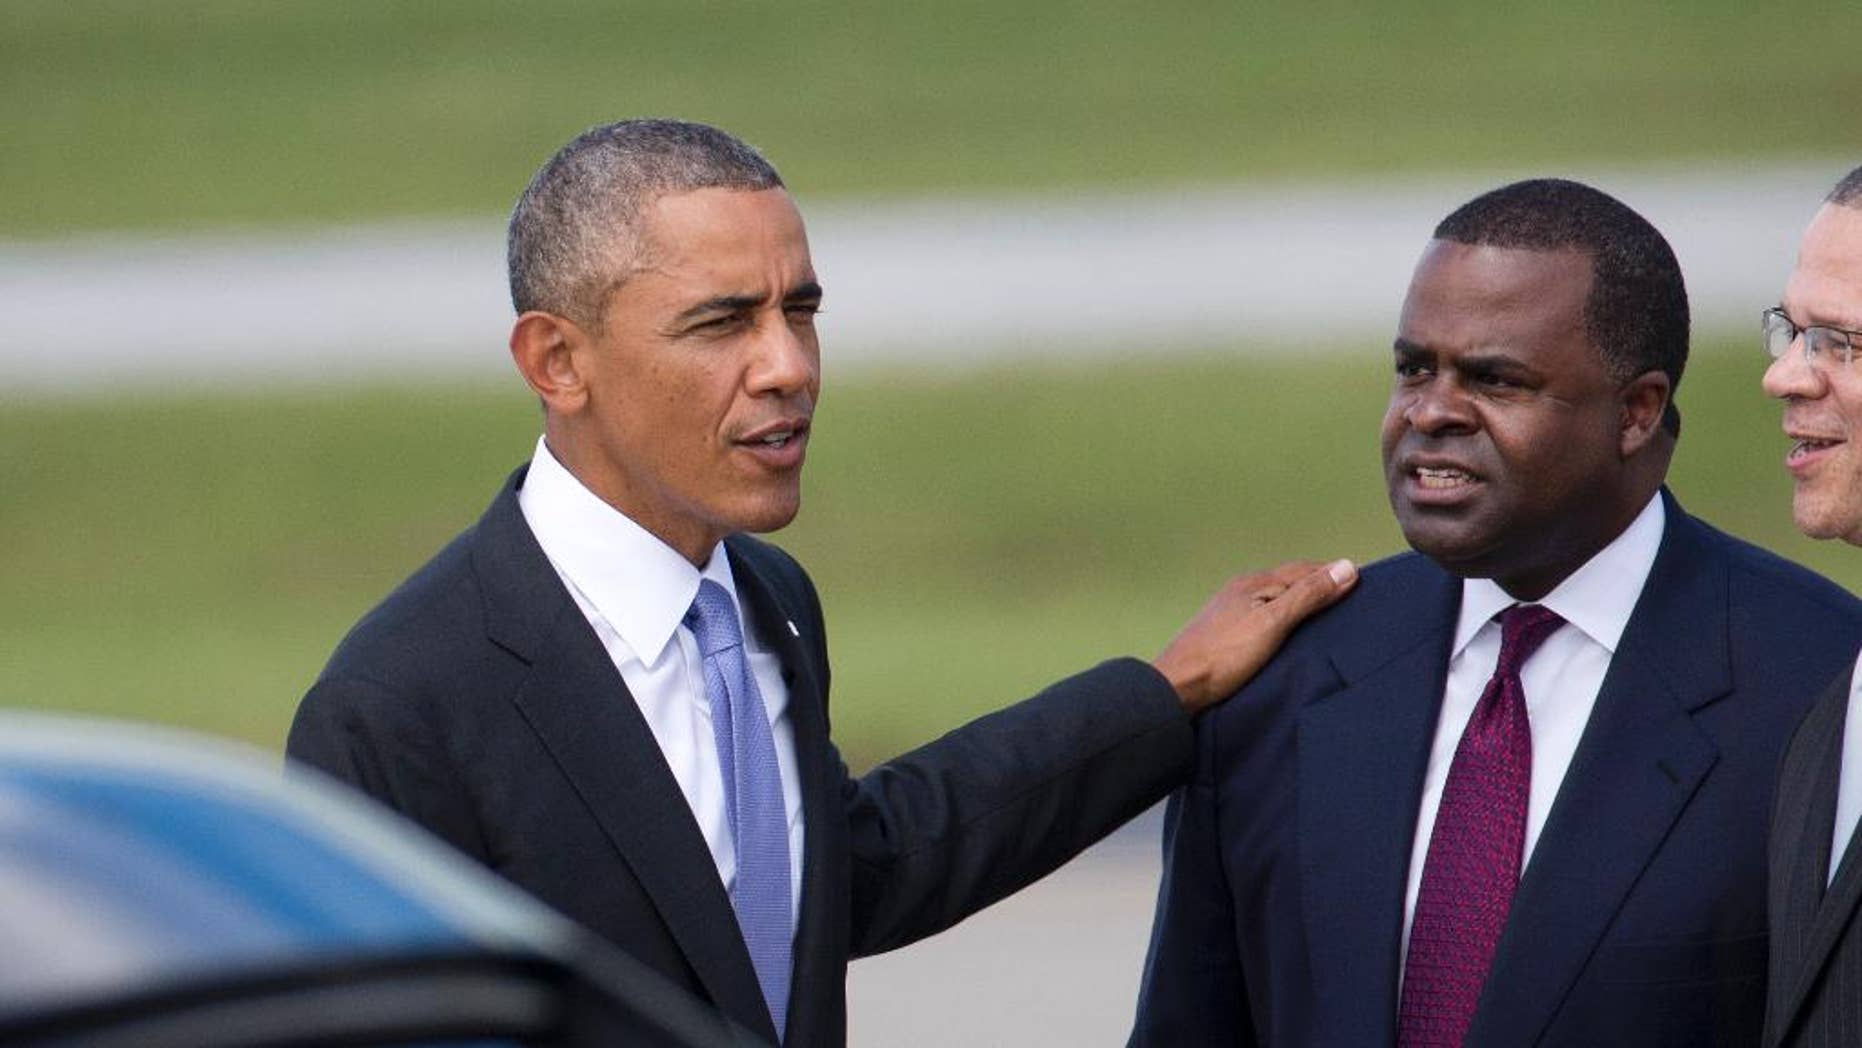 President Barack Obama chats with Atlanta Mayor Kasim Reed after  arriving at Hartsfield Jackson Atlanta International Airport in Atlanta for a scheduled visit to the Centers for Disease Control and Prevention  for a briefing on West Africa's Ebola out break, Tuesday, Sept. 16, 2014. (AP Photo/John Bazemore)